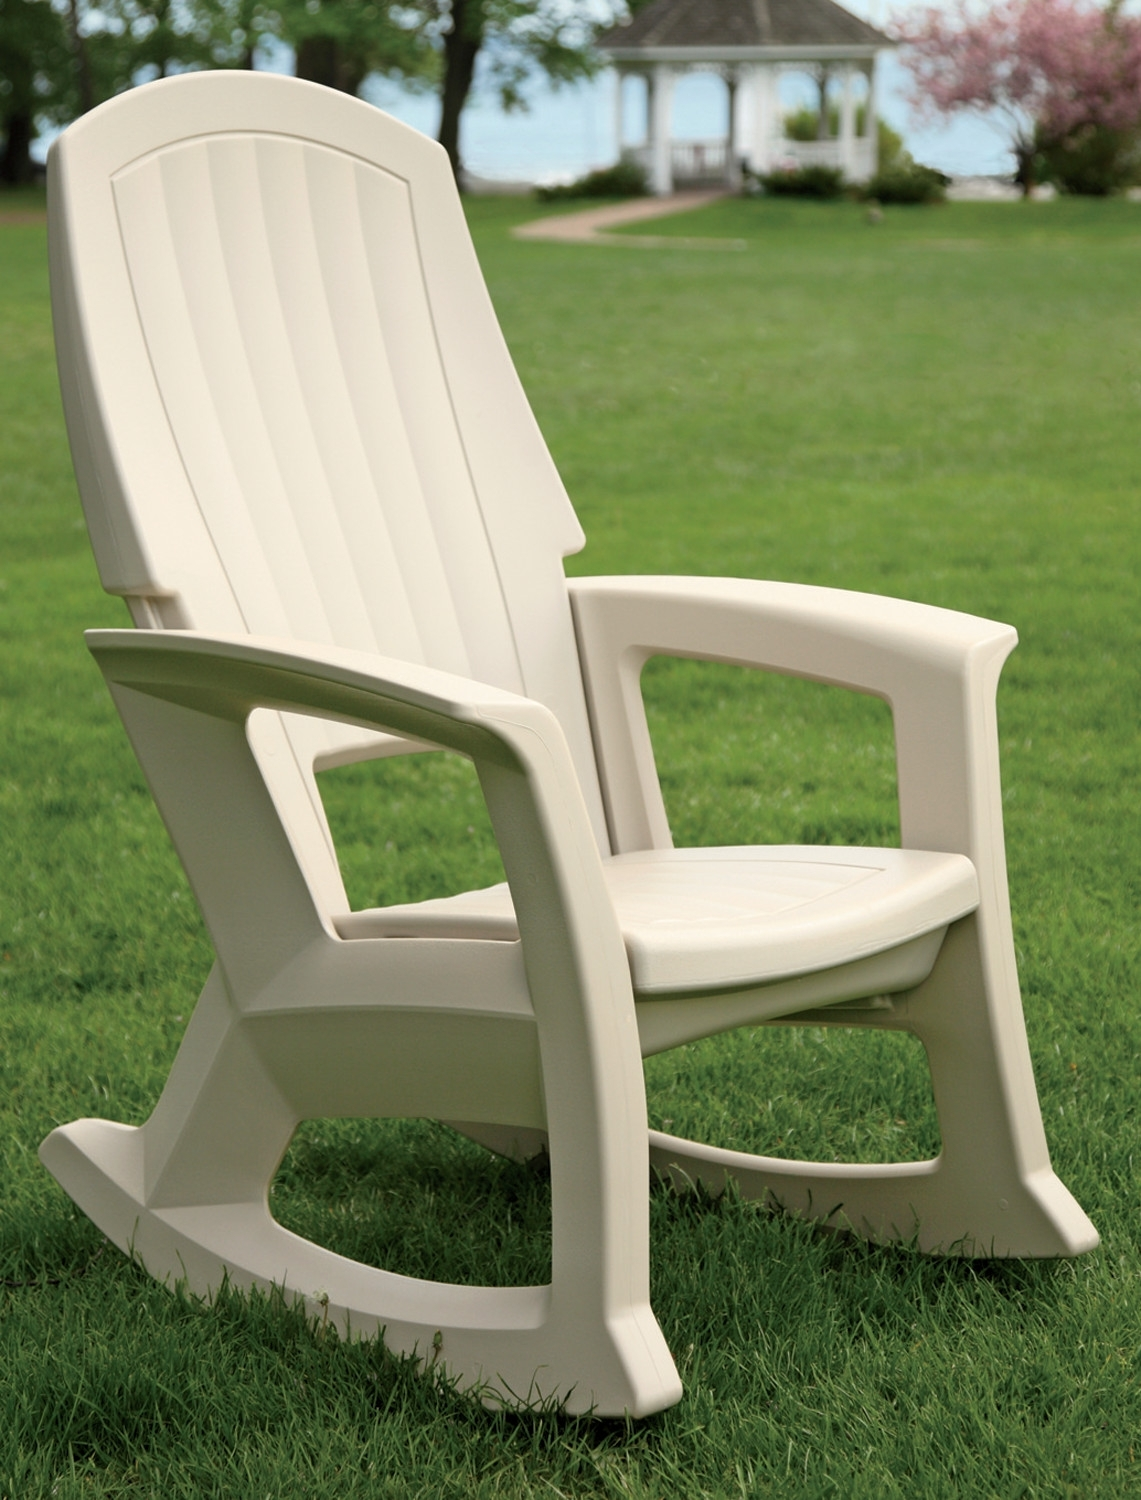 Patio Rocking Chair Oversized Outdoor Chairs Best For Small Nursery Throughout Used Patio Rocking Chairs (View 9 of 15)